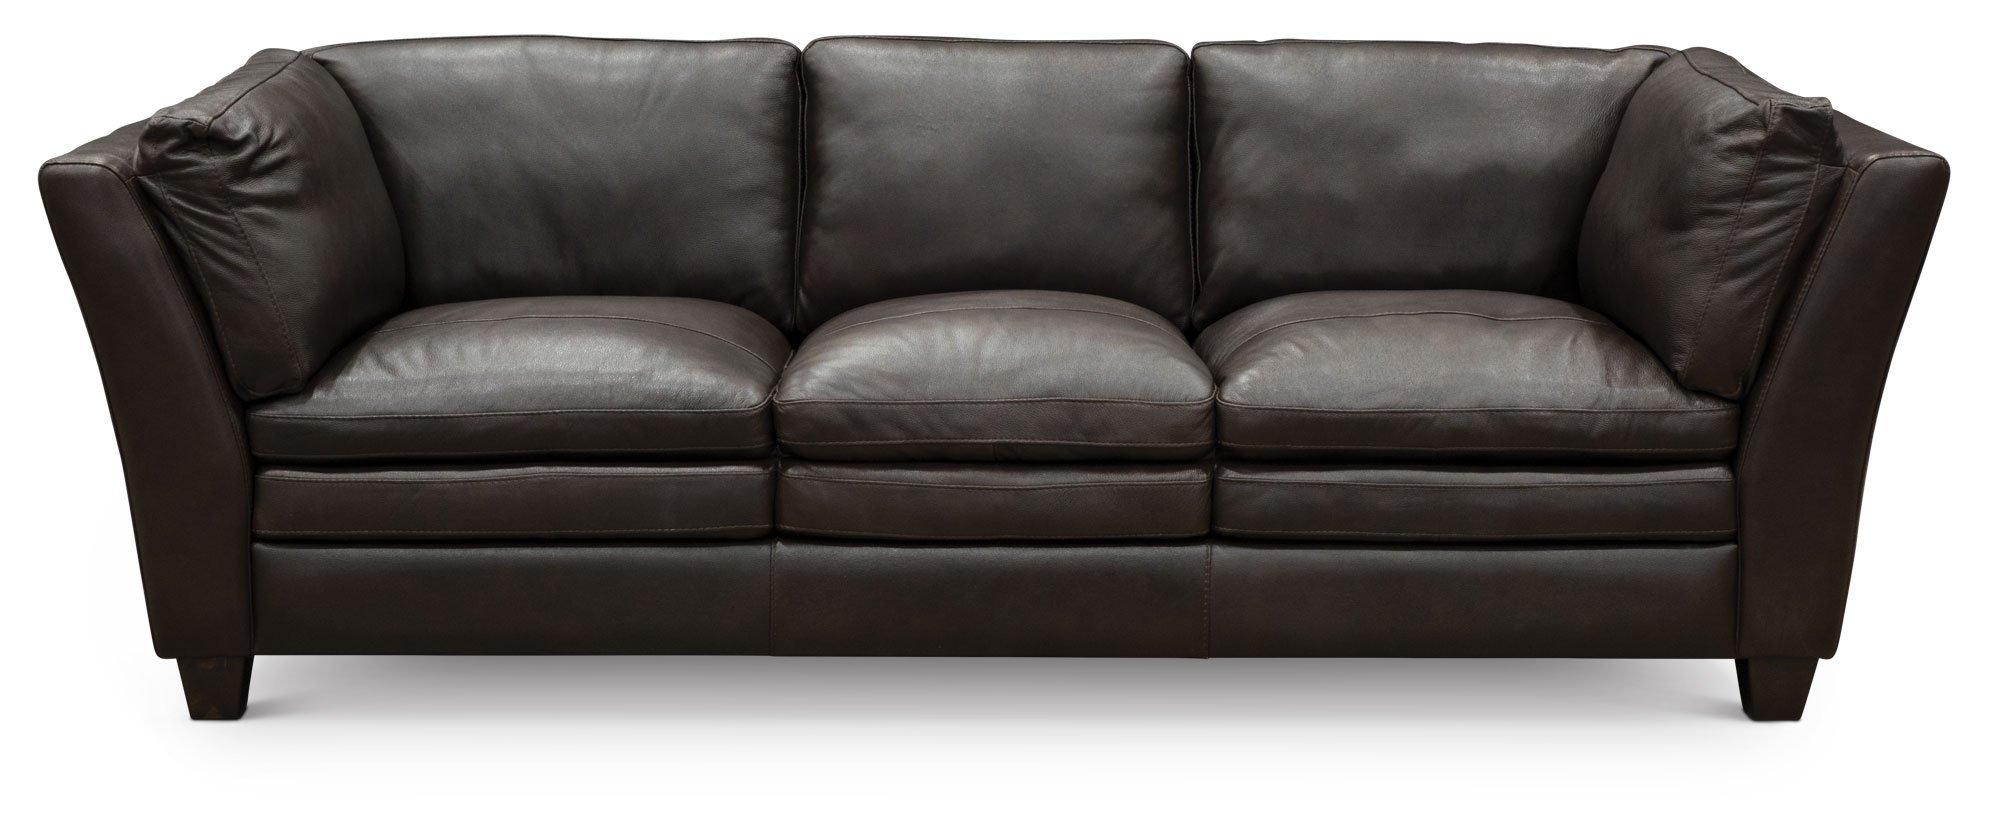 Contemporary Dark Brown Leather 3 Piece Sectional Capri Rc Willey Furniture Store